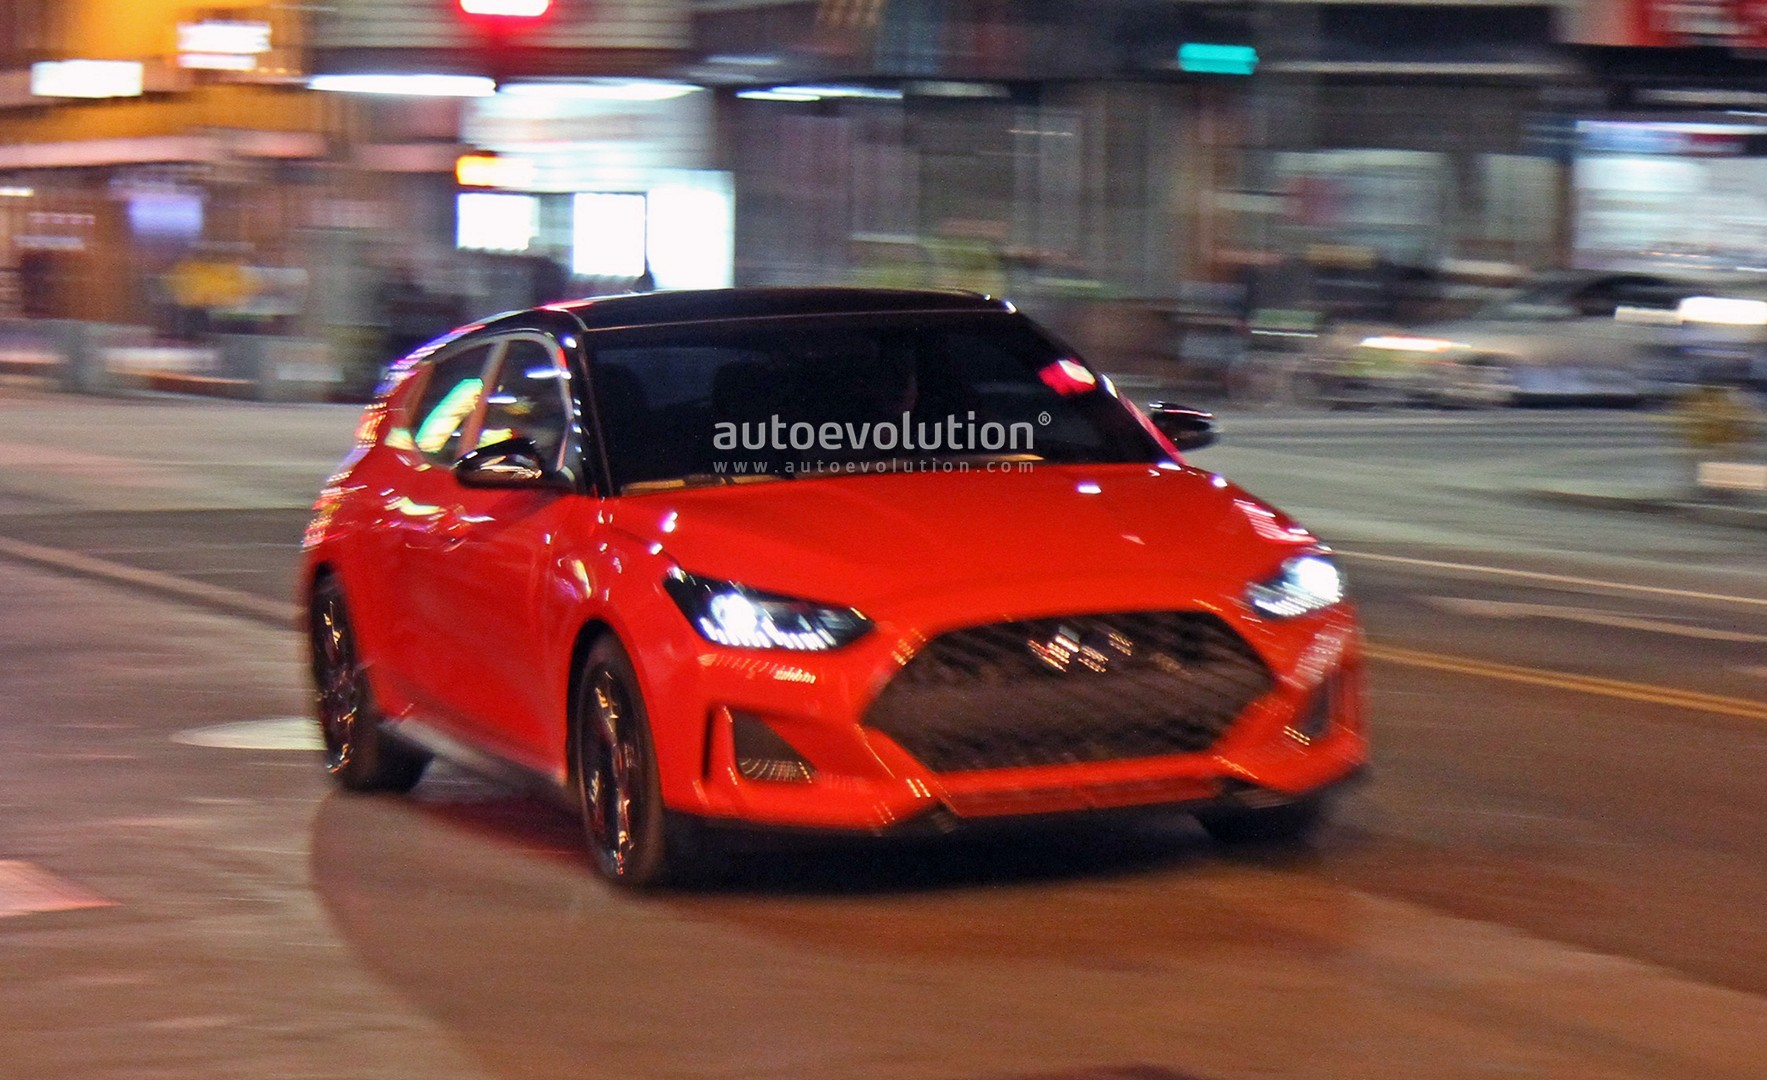 2019 Hyundai Veloster Photographed Undisguised During Shoot 2019 Hyundai  Veloster Photographed Undisguised During Shoot ...